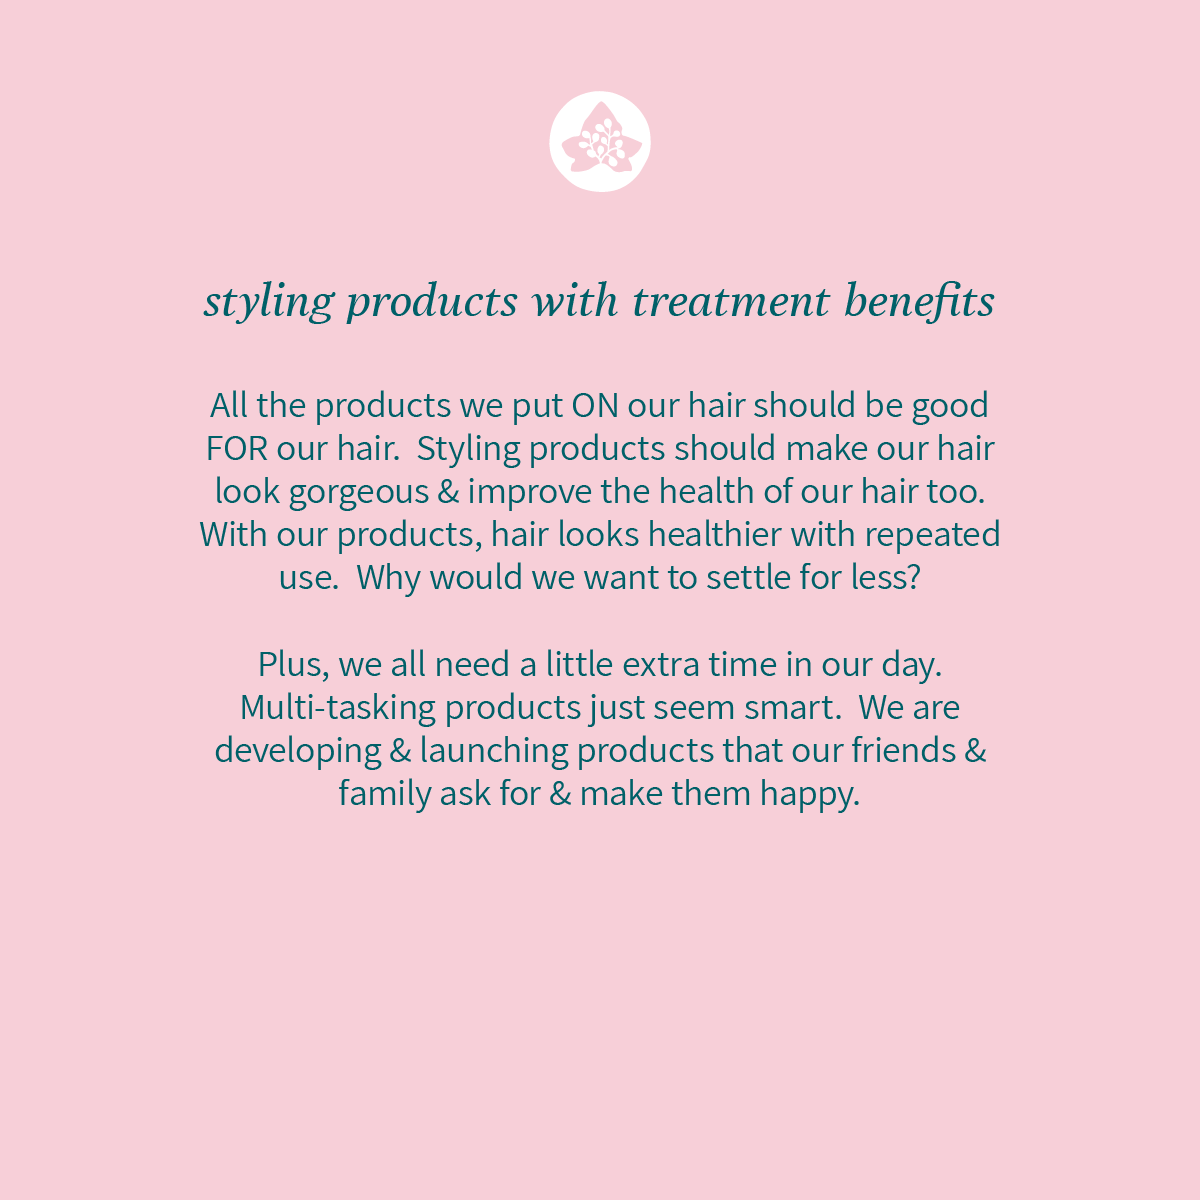 styling products with treatment benefits